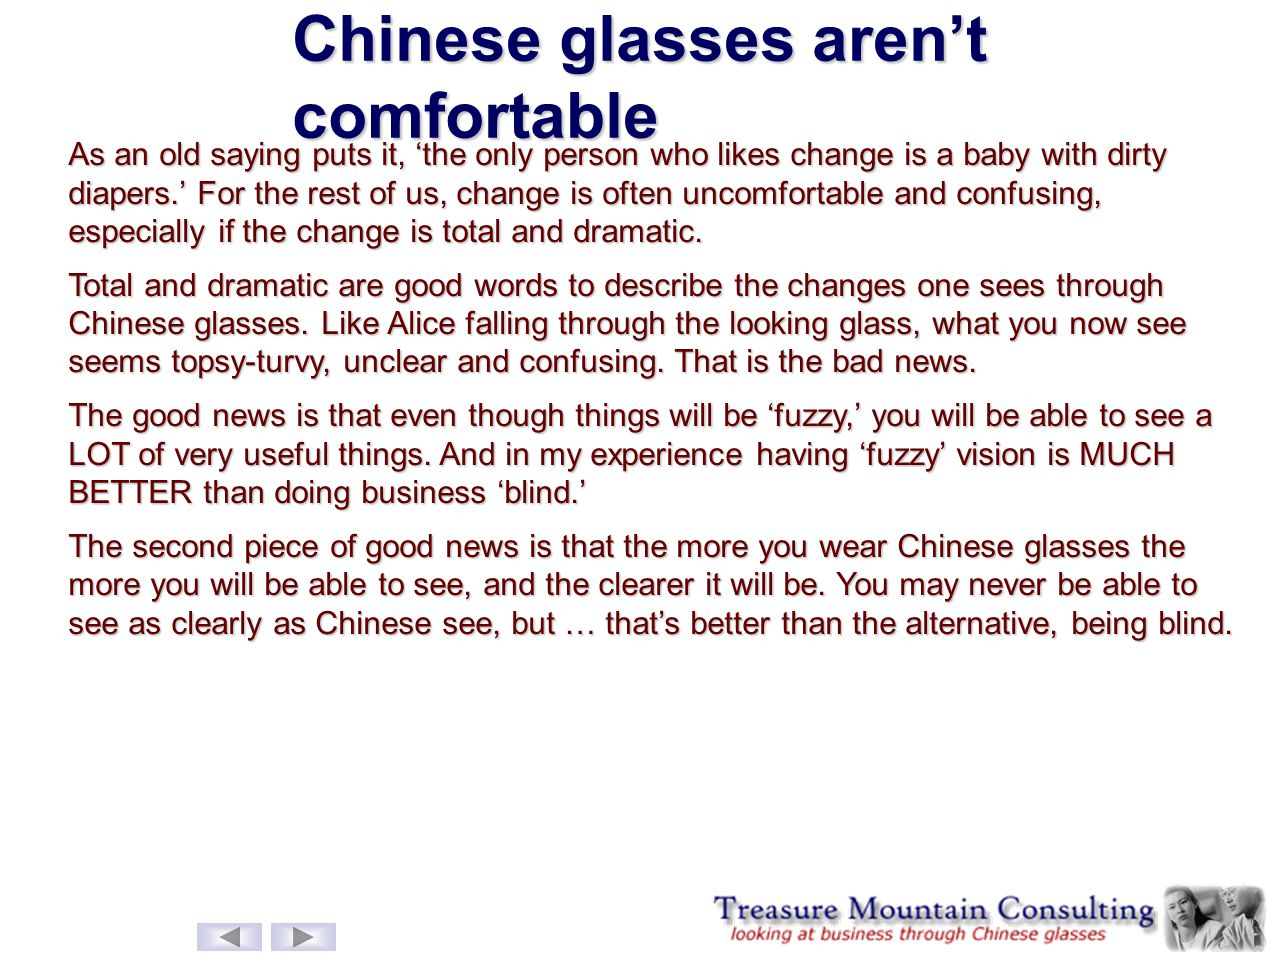 Chinese glasses aren't comfortable